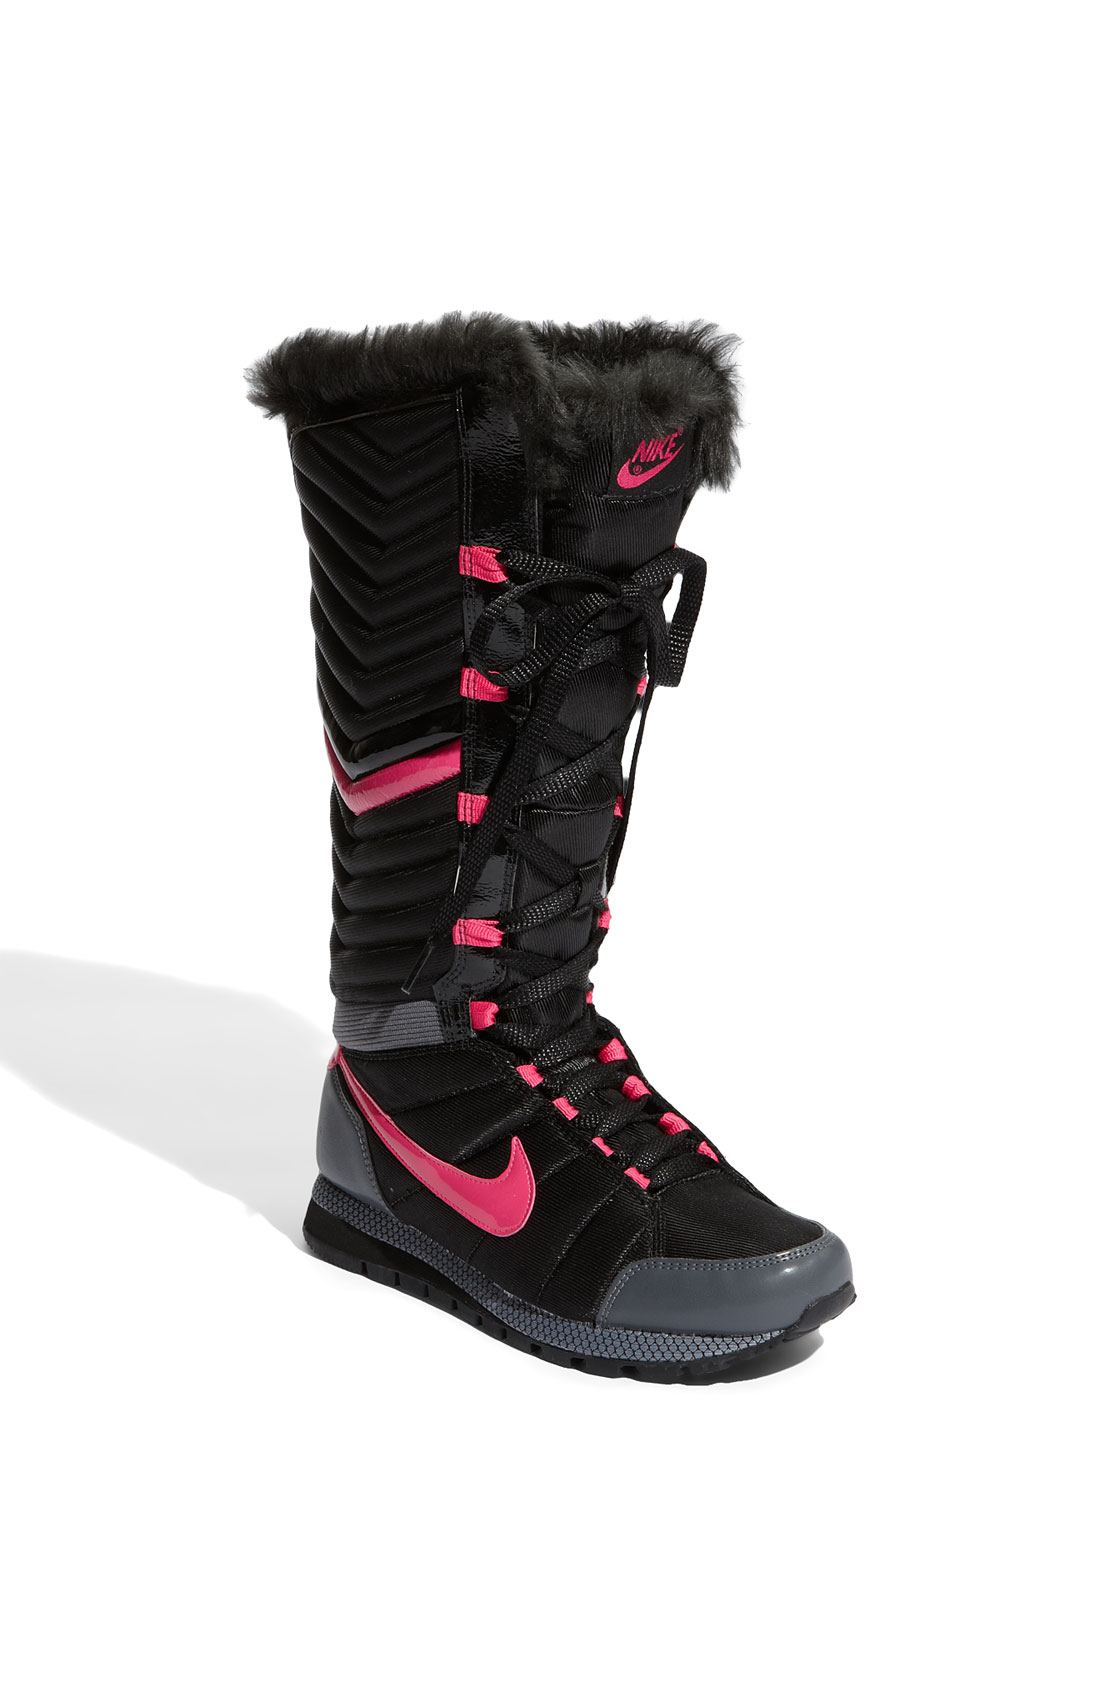 Lastest  Nike Winter Boots For Men Acdcxwgs Image And Save Image As  Click